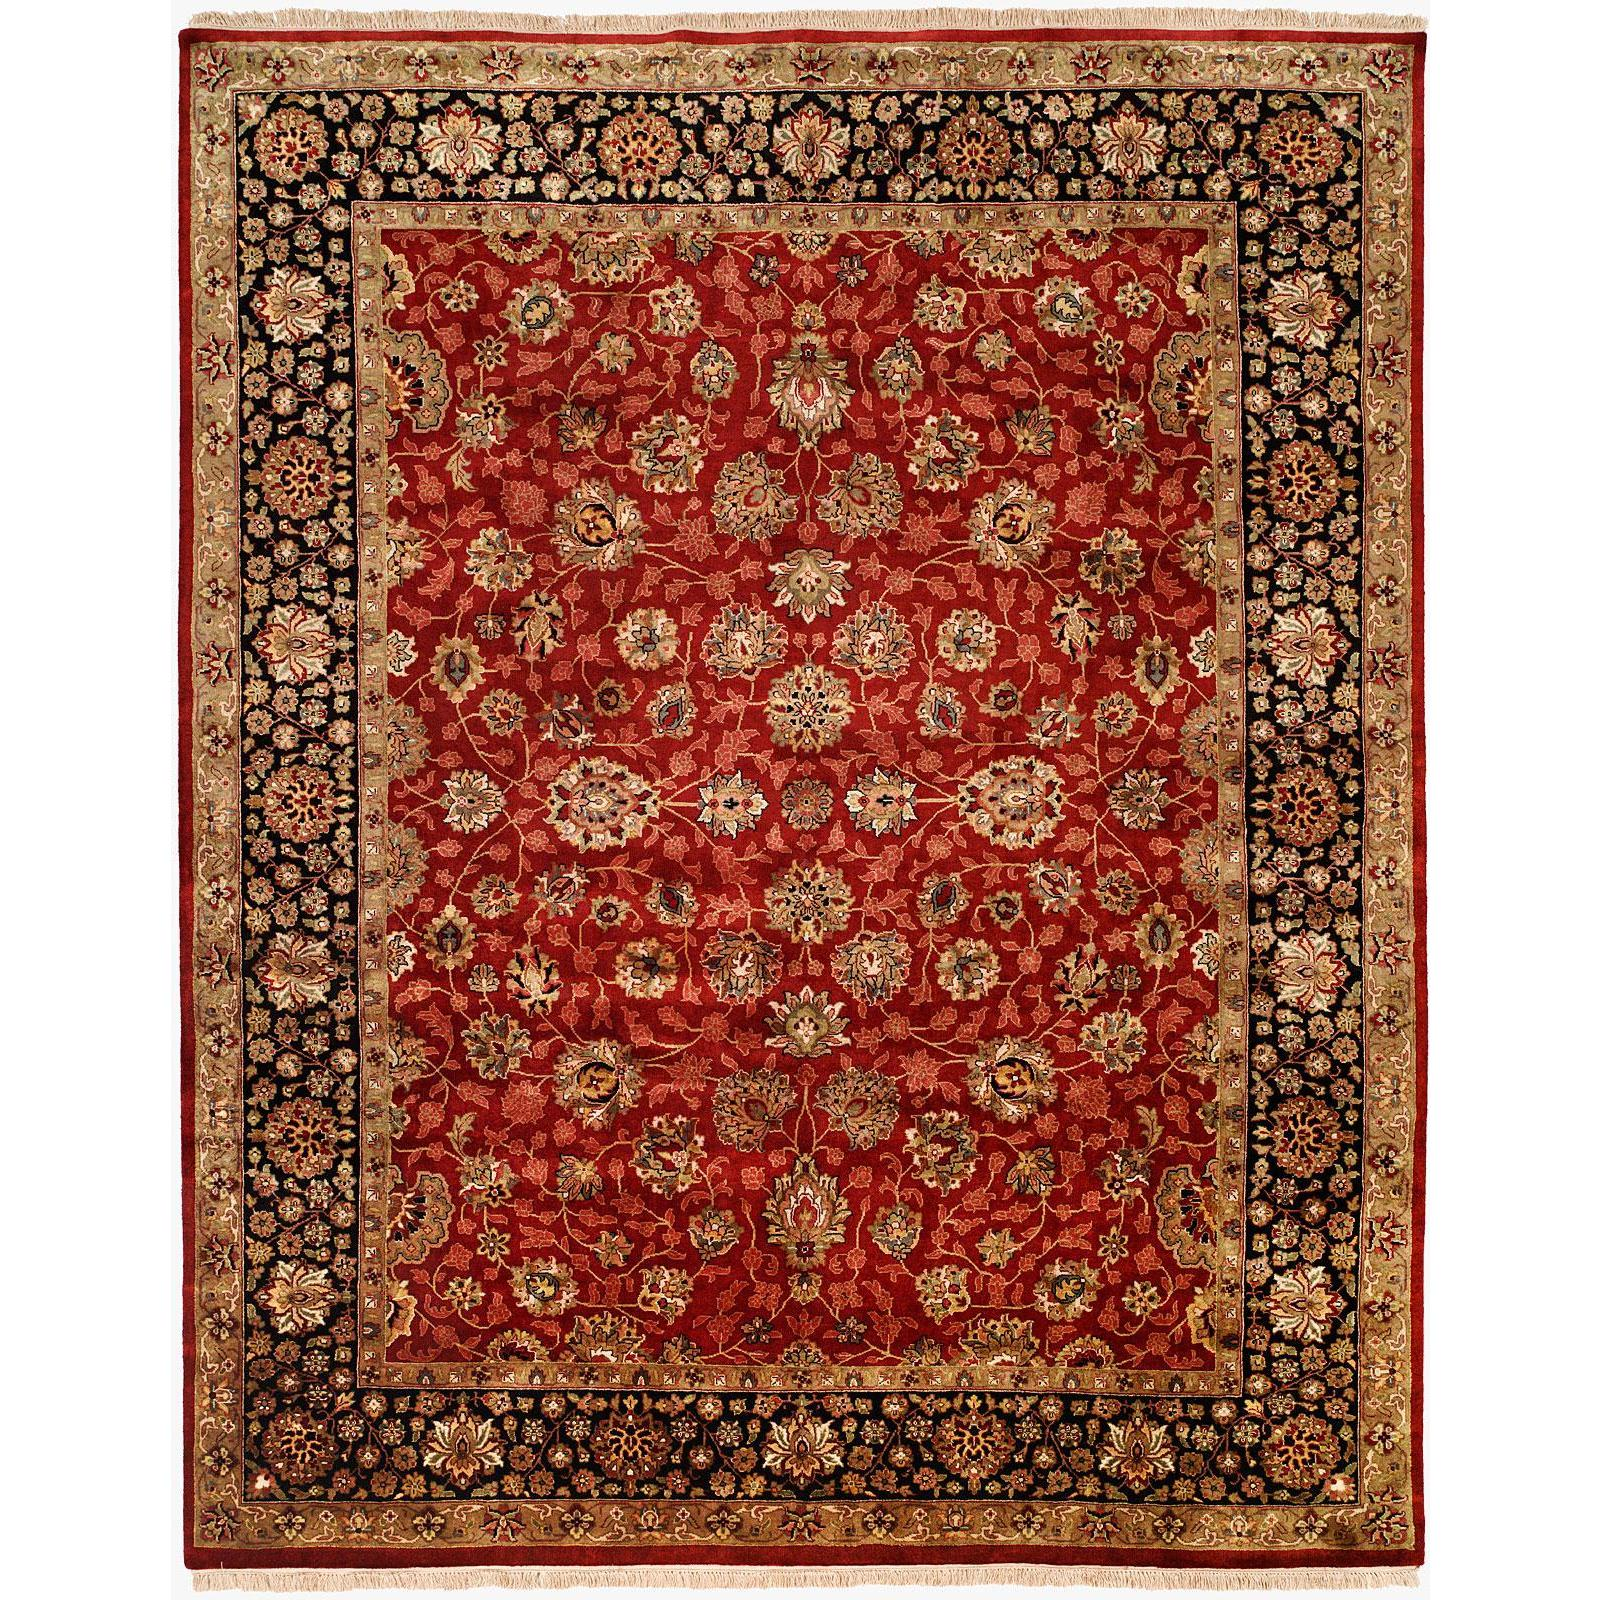 Tabriz Red Black Wool Silk Hand Knotted Area Rug 6 X 9 6 X 9 Overstock 18595309